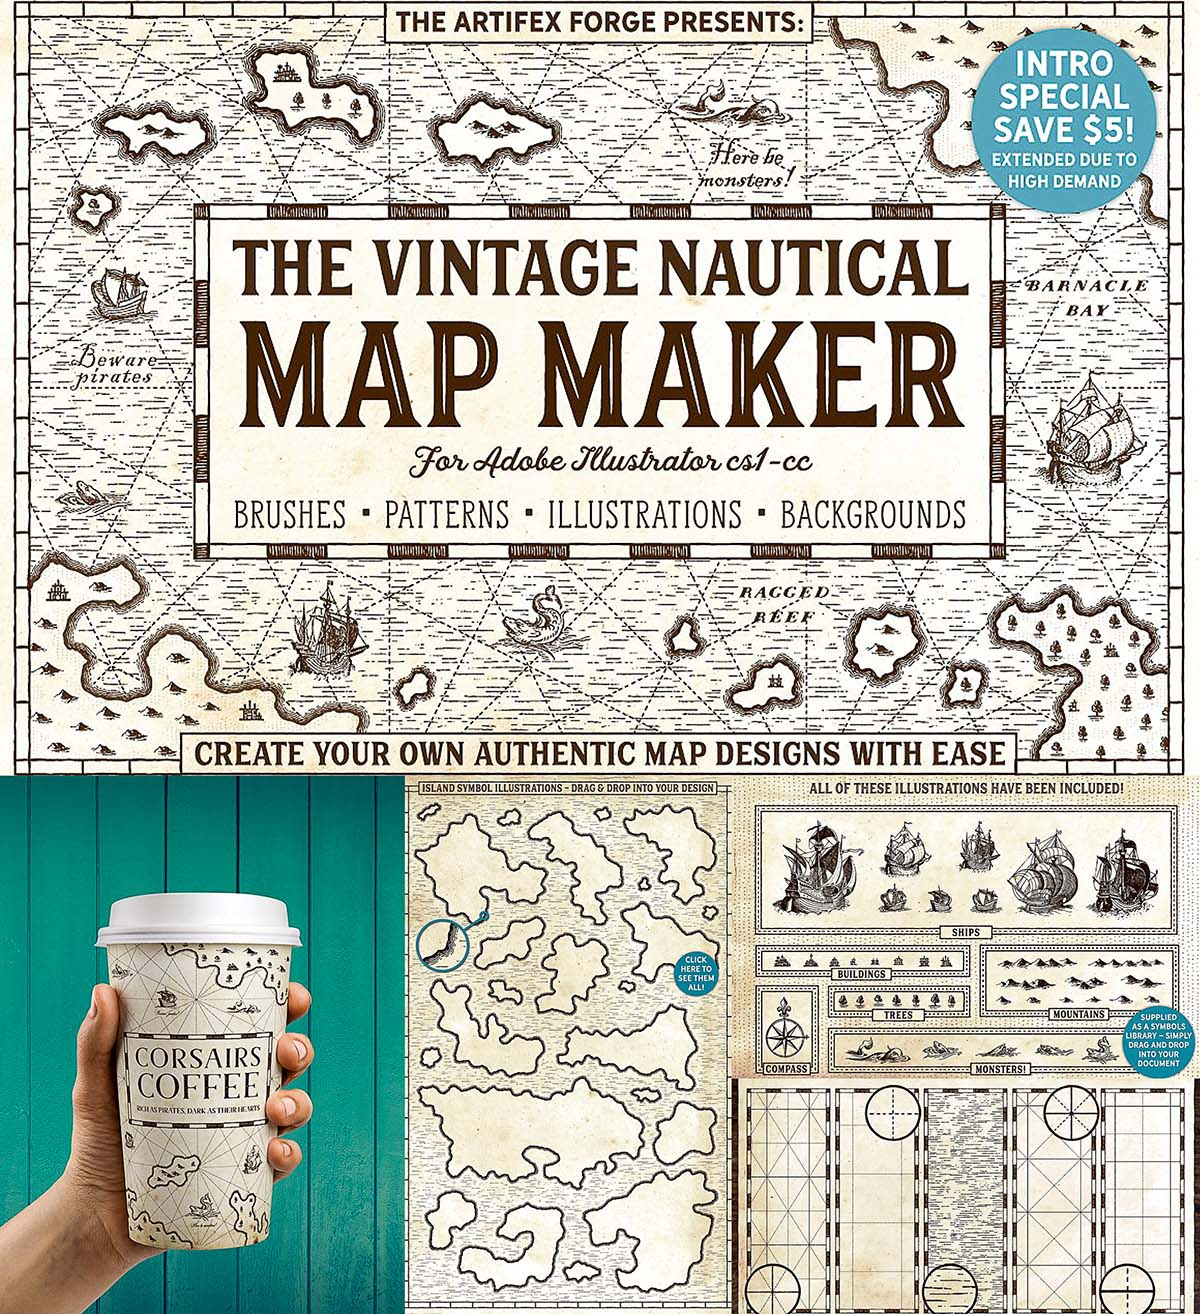 The vintage nautical map maker   Free download on free map editor, free map making program, google maps, web mapping, free printable us map, free art software, free concept maps, free map creator, free map game, yahoo! maps, free map software, free interactive world map, free map art, zygote body, free trip maps, free print color world map, free rpg city map, d d maps maker, free dungeon maps, free mind map, free map designer, free map generator, free map design, free outline maps,